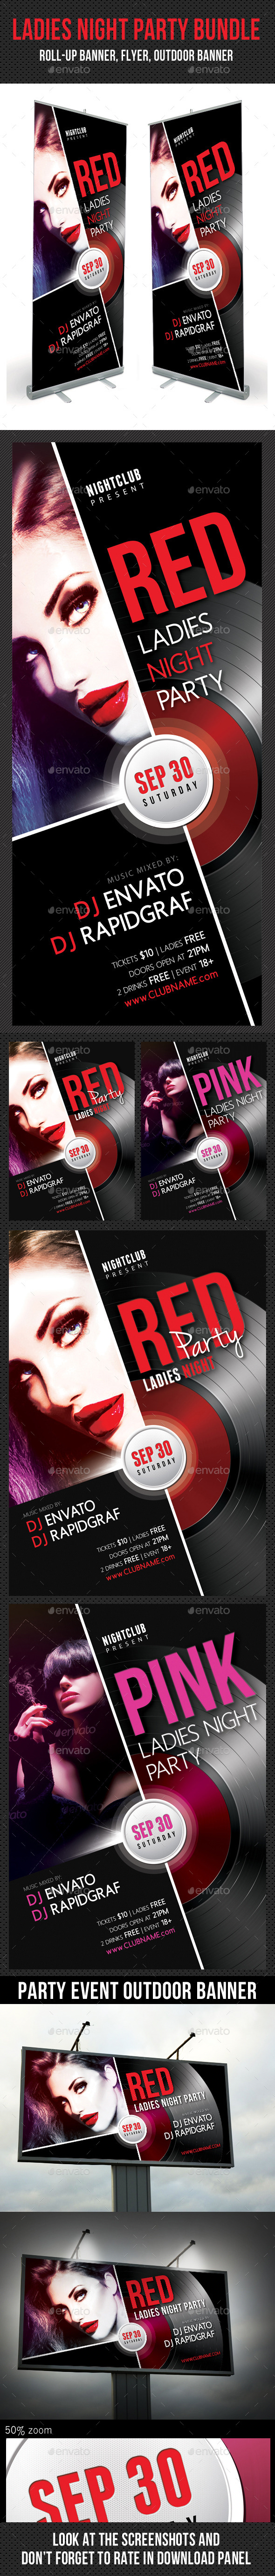 3 in 1 Ladies Night Party Banners Flyer Bundle - Signage Print Templates